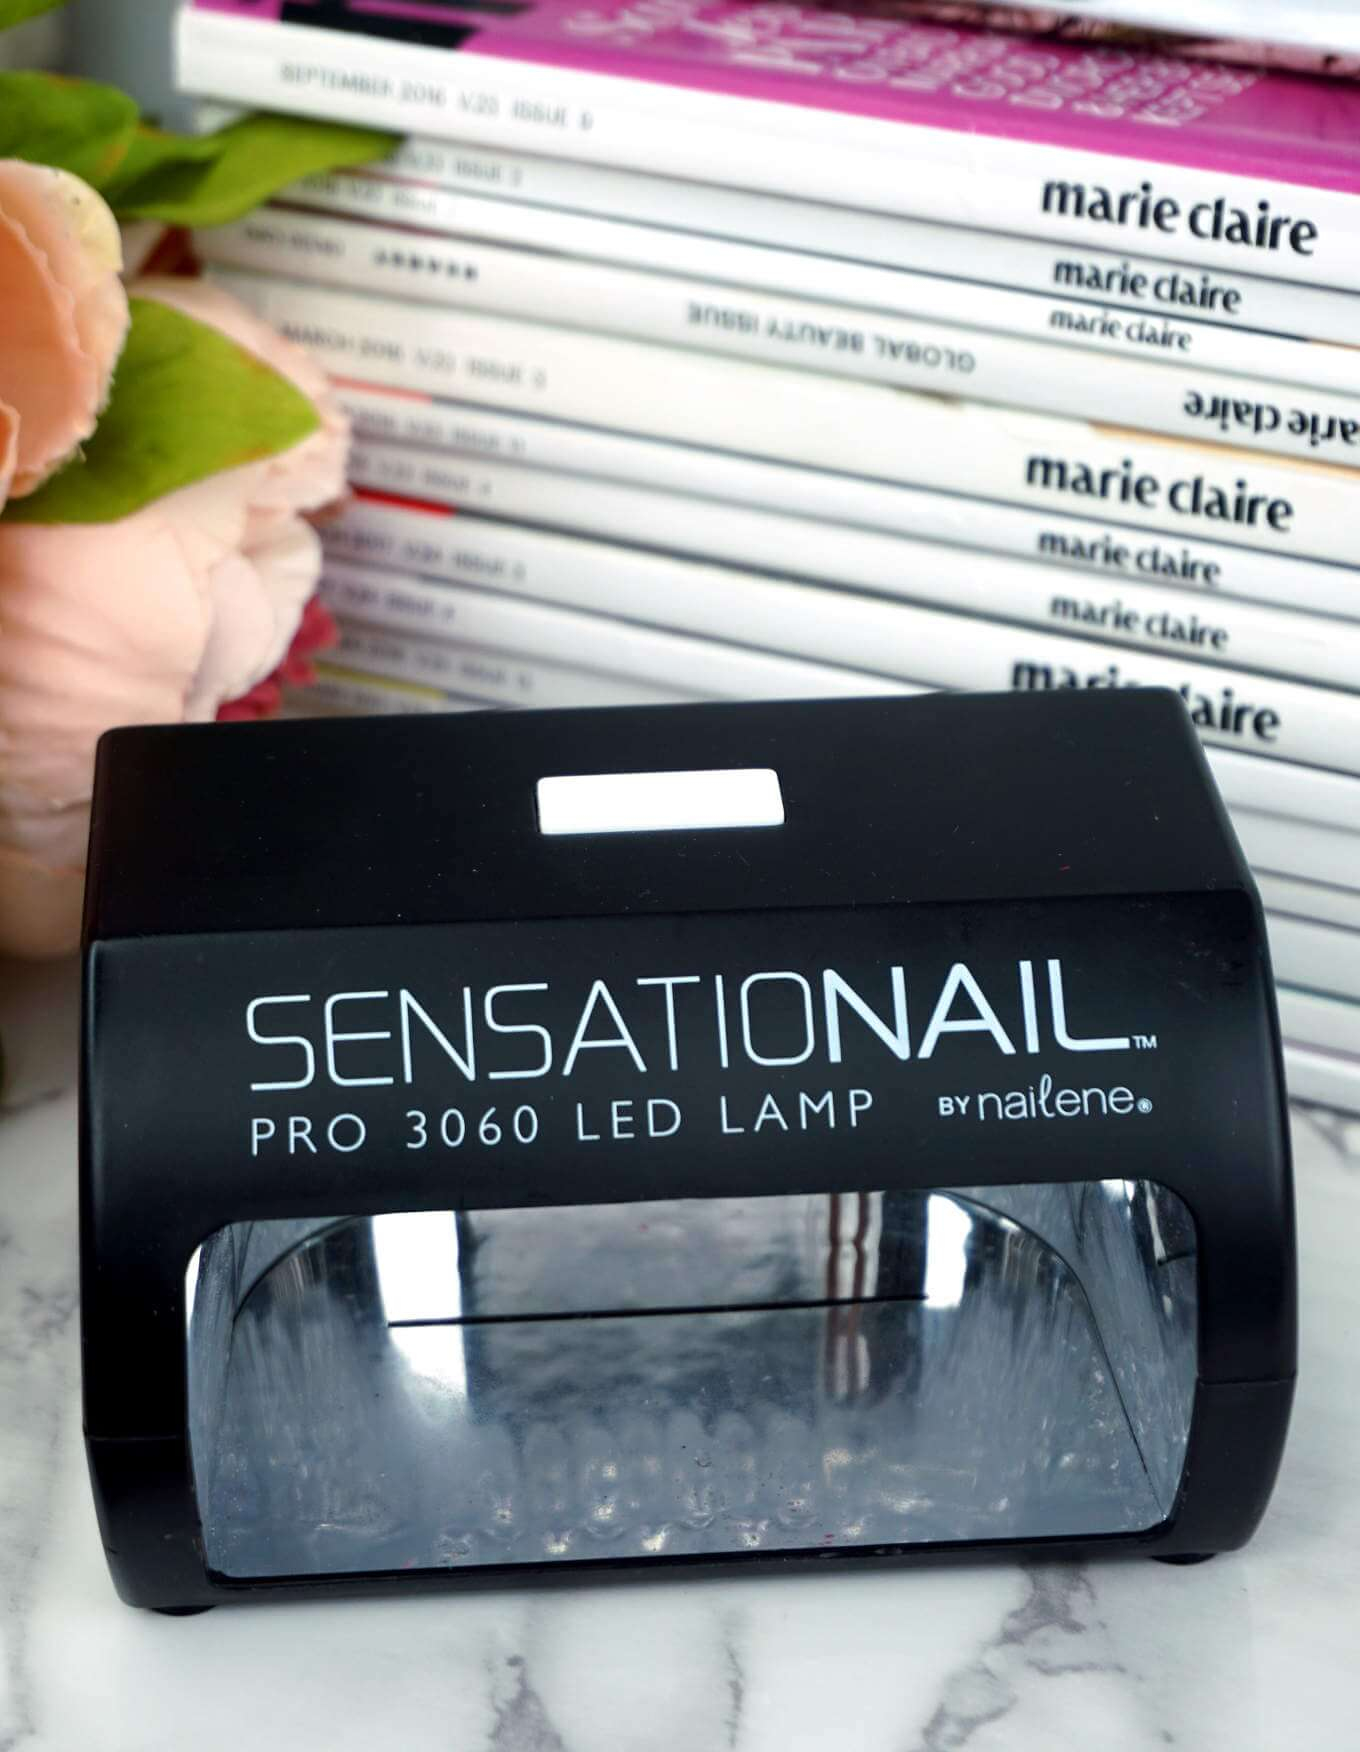 SensatioNail Nail PRO 3060 Led Lamp By Nailene | Must Have Products For DIY Gel Manicure | Chiclypoised | Chiclypoised.com